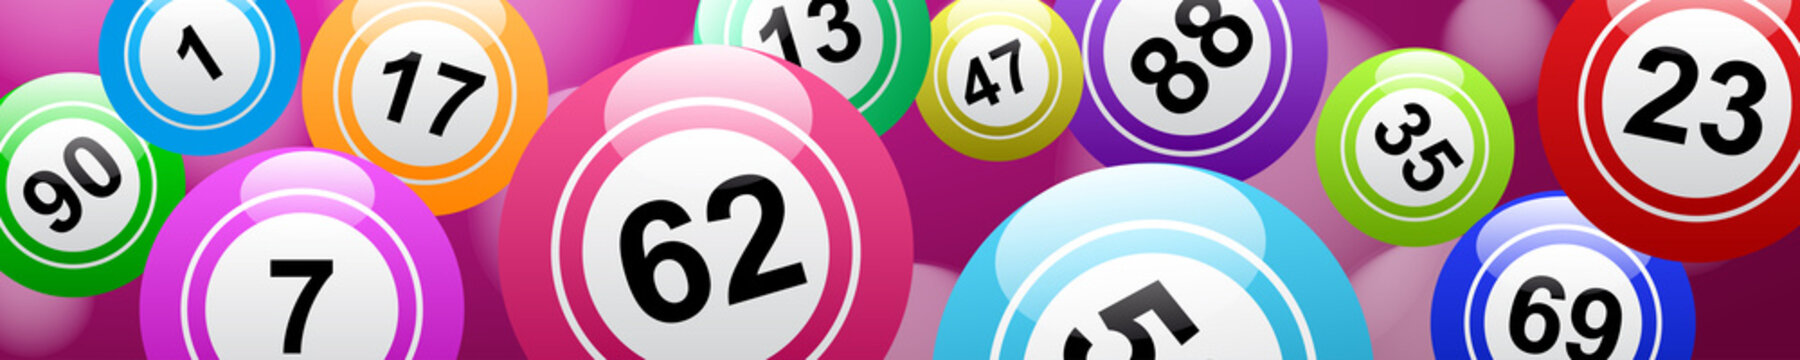 Bingo lottery, header background vector design, lucky balls and numbers of lotto